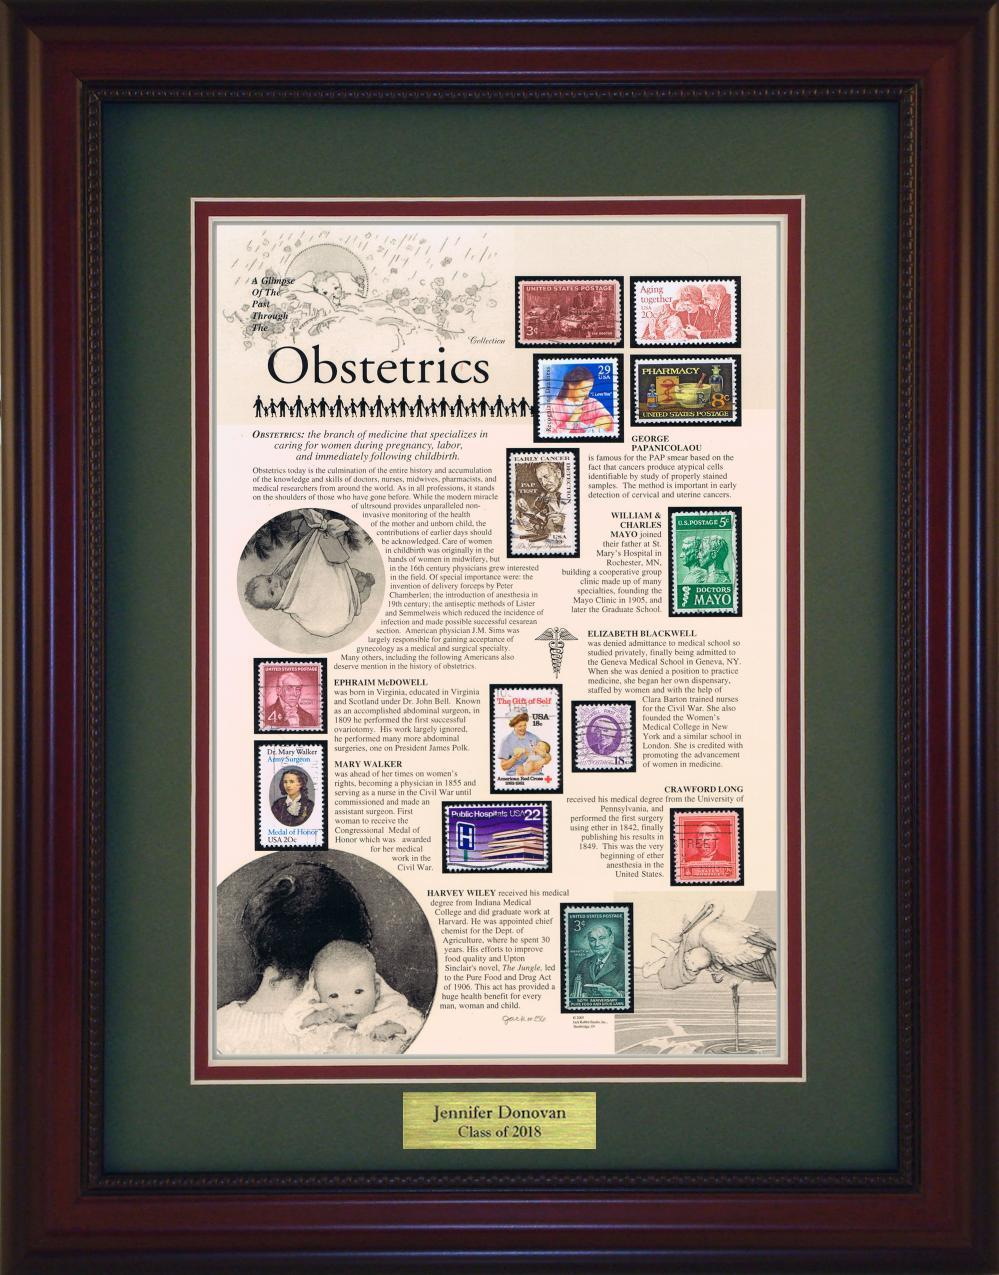 Obstetrics - Personalized Unique Framed Gift